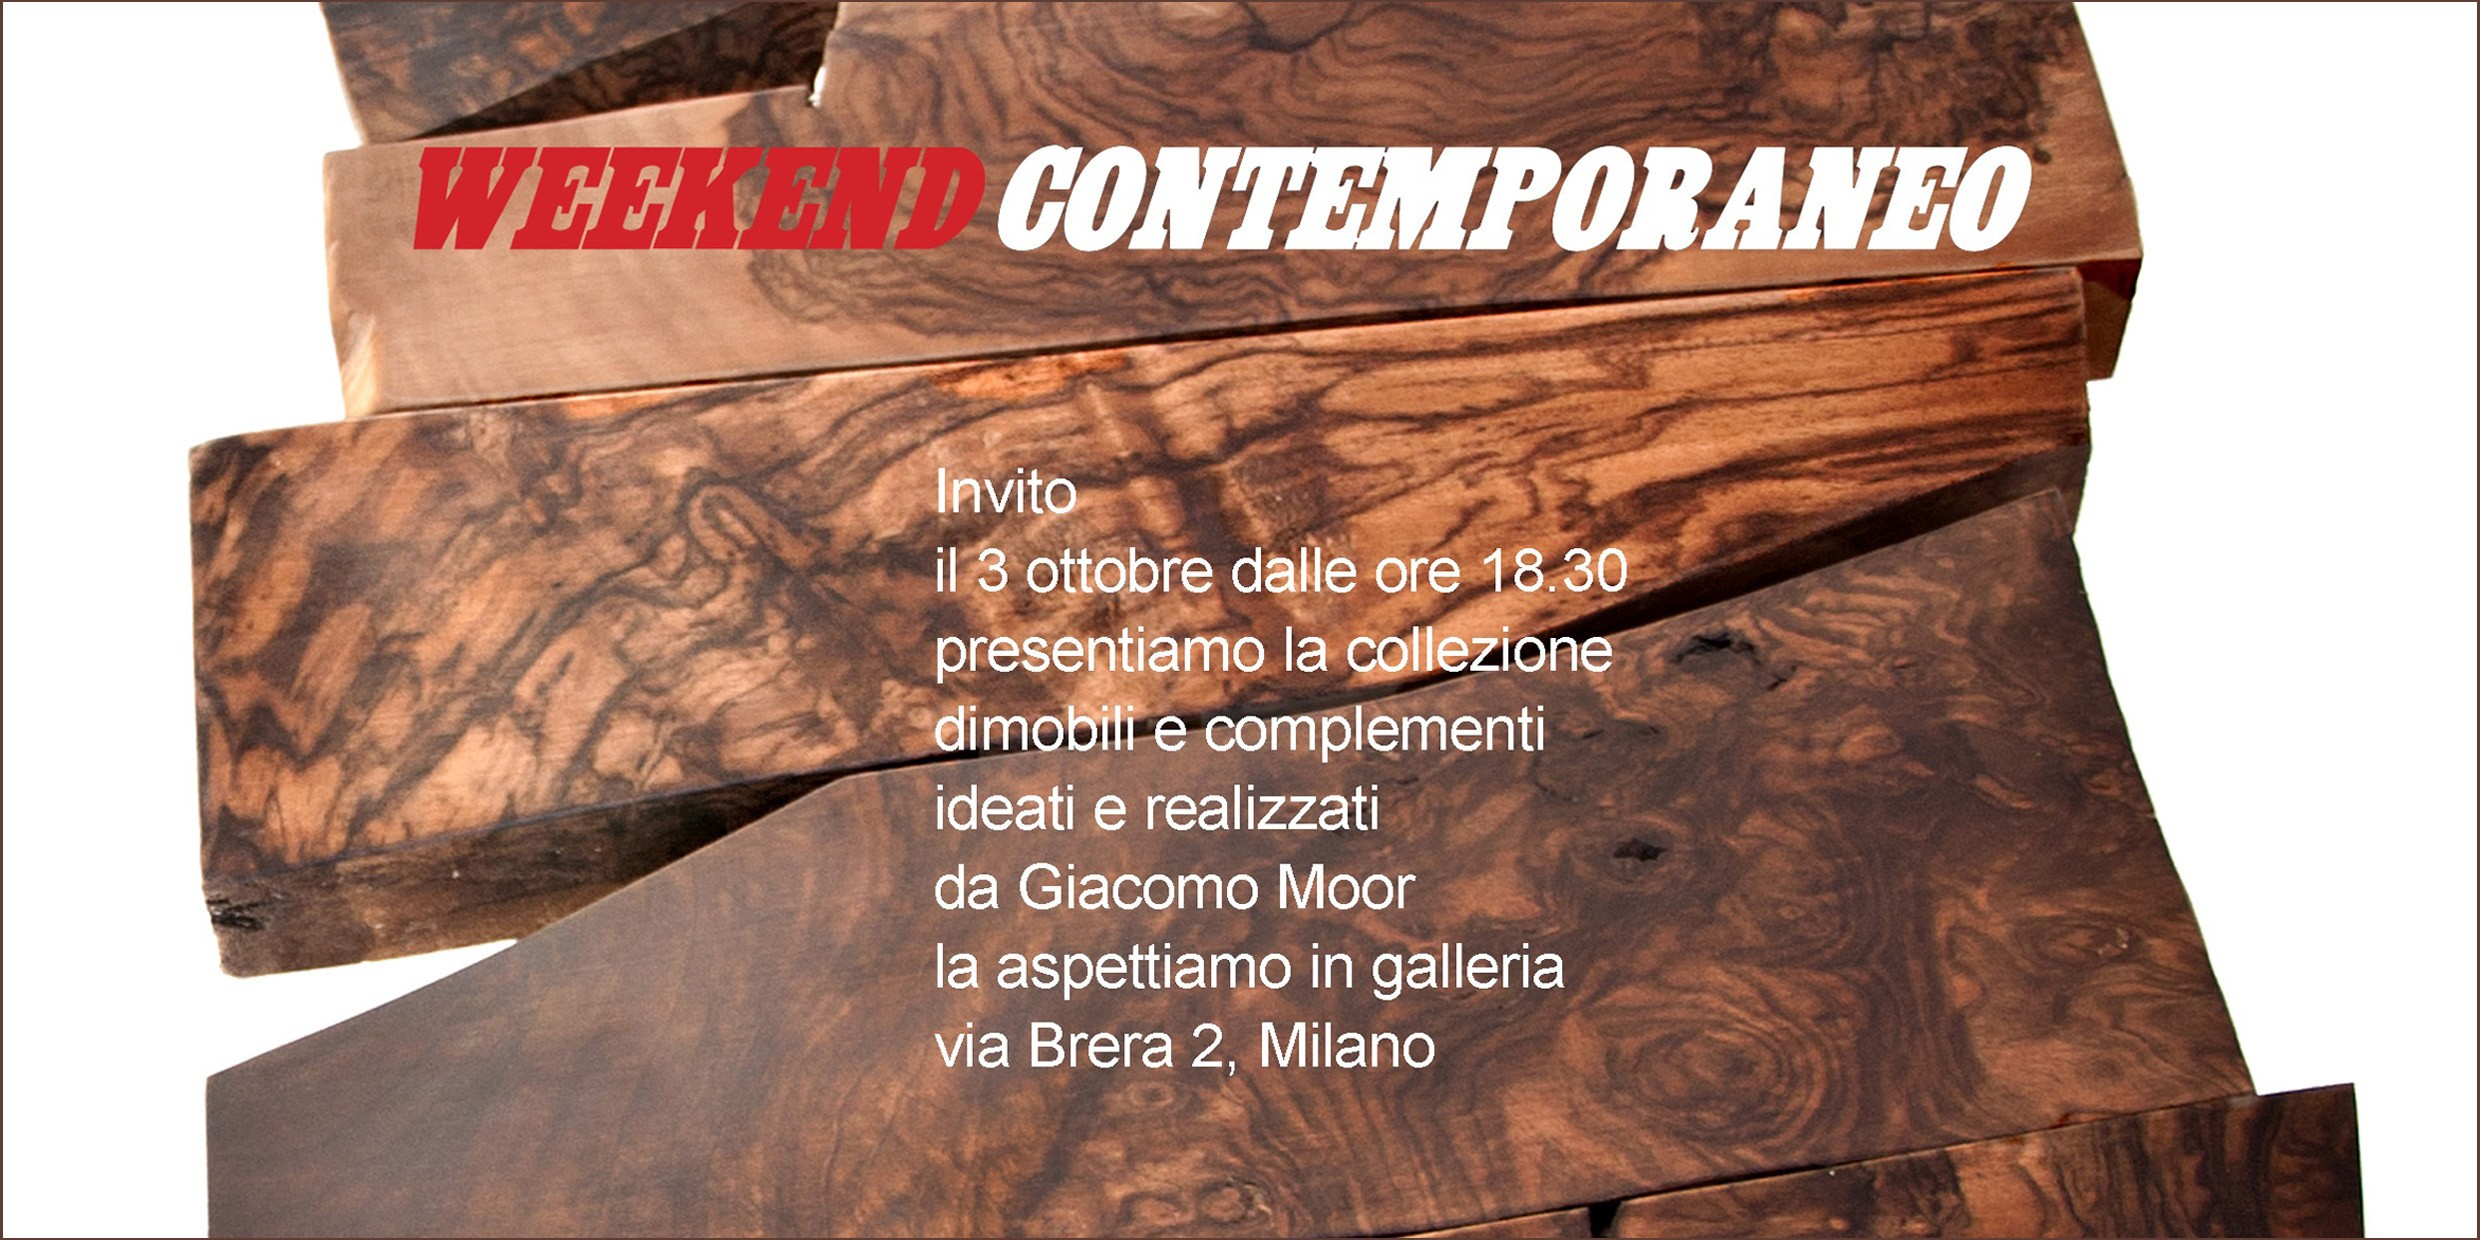 Weekend contemporaneo, Giacomo Moor | Galleria Consadori 2012